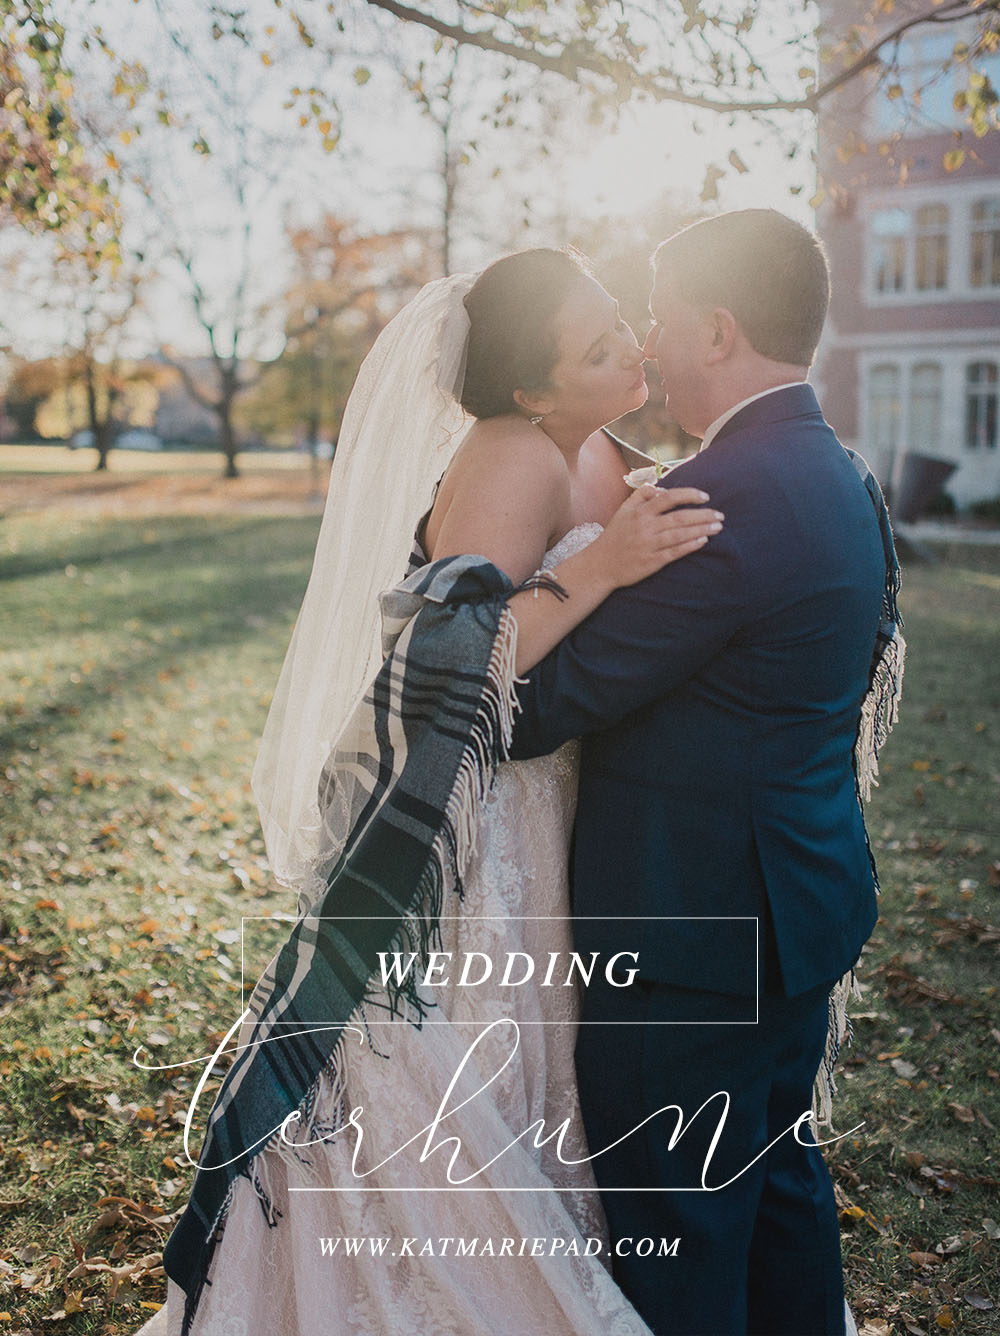 Lauren + Nick | Romantic Fall Wedding with Outlander Vibes in Muncie | Indianapolis Destination Wedding & Elopement Photographers